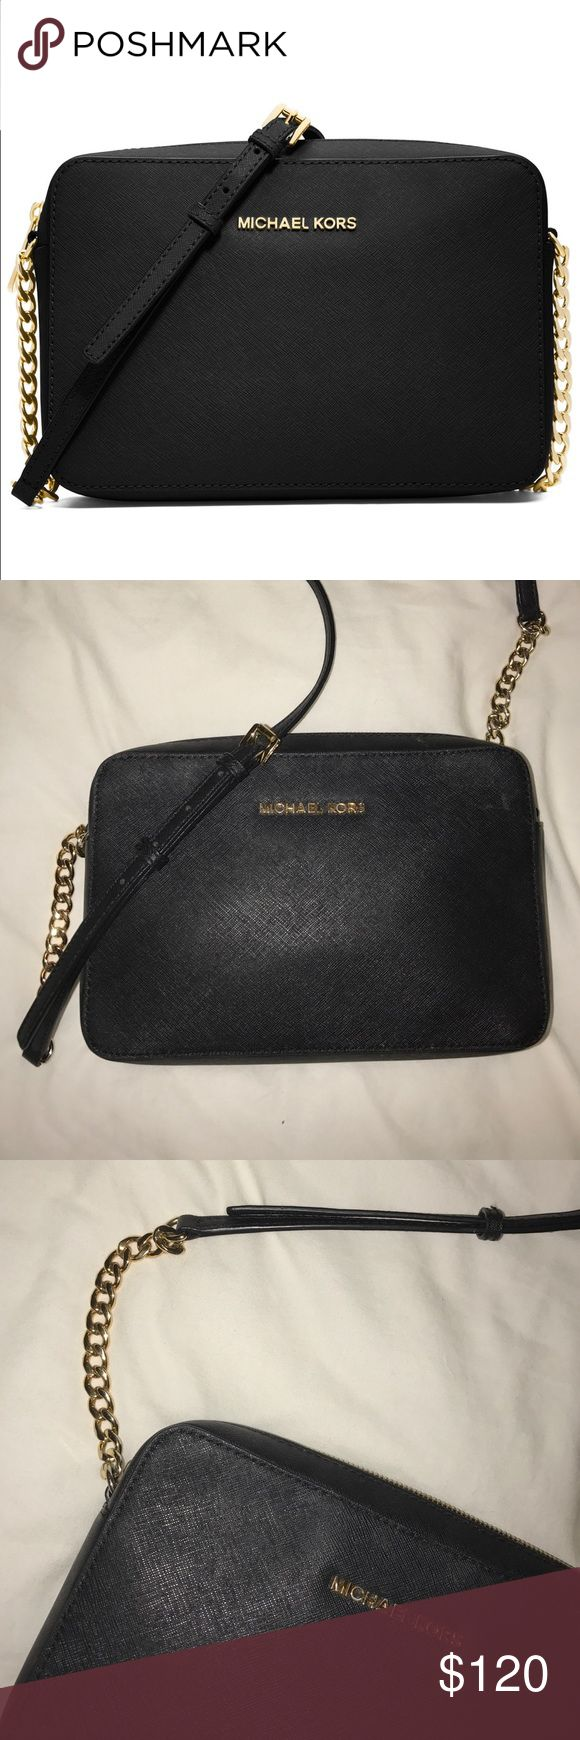 Michael Kors Jet Set Large Crossbody Perfect cross-body bag for day or night! Black with gold hardware. MICHAEL Michael Kors Bags Crossbody Bags